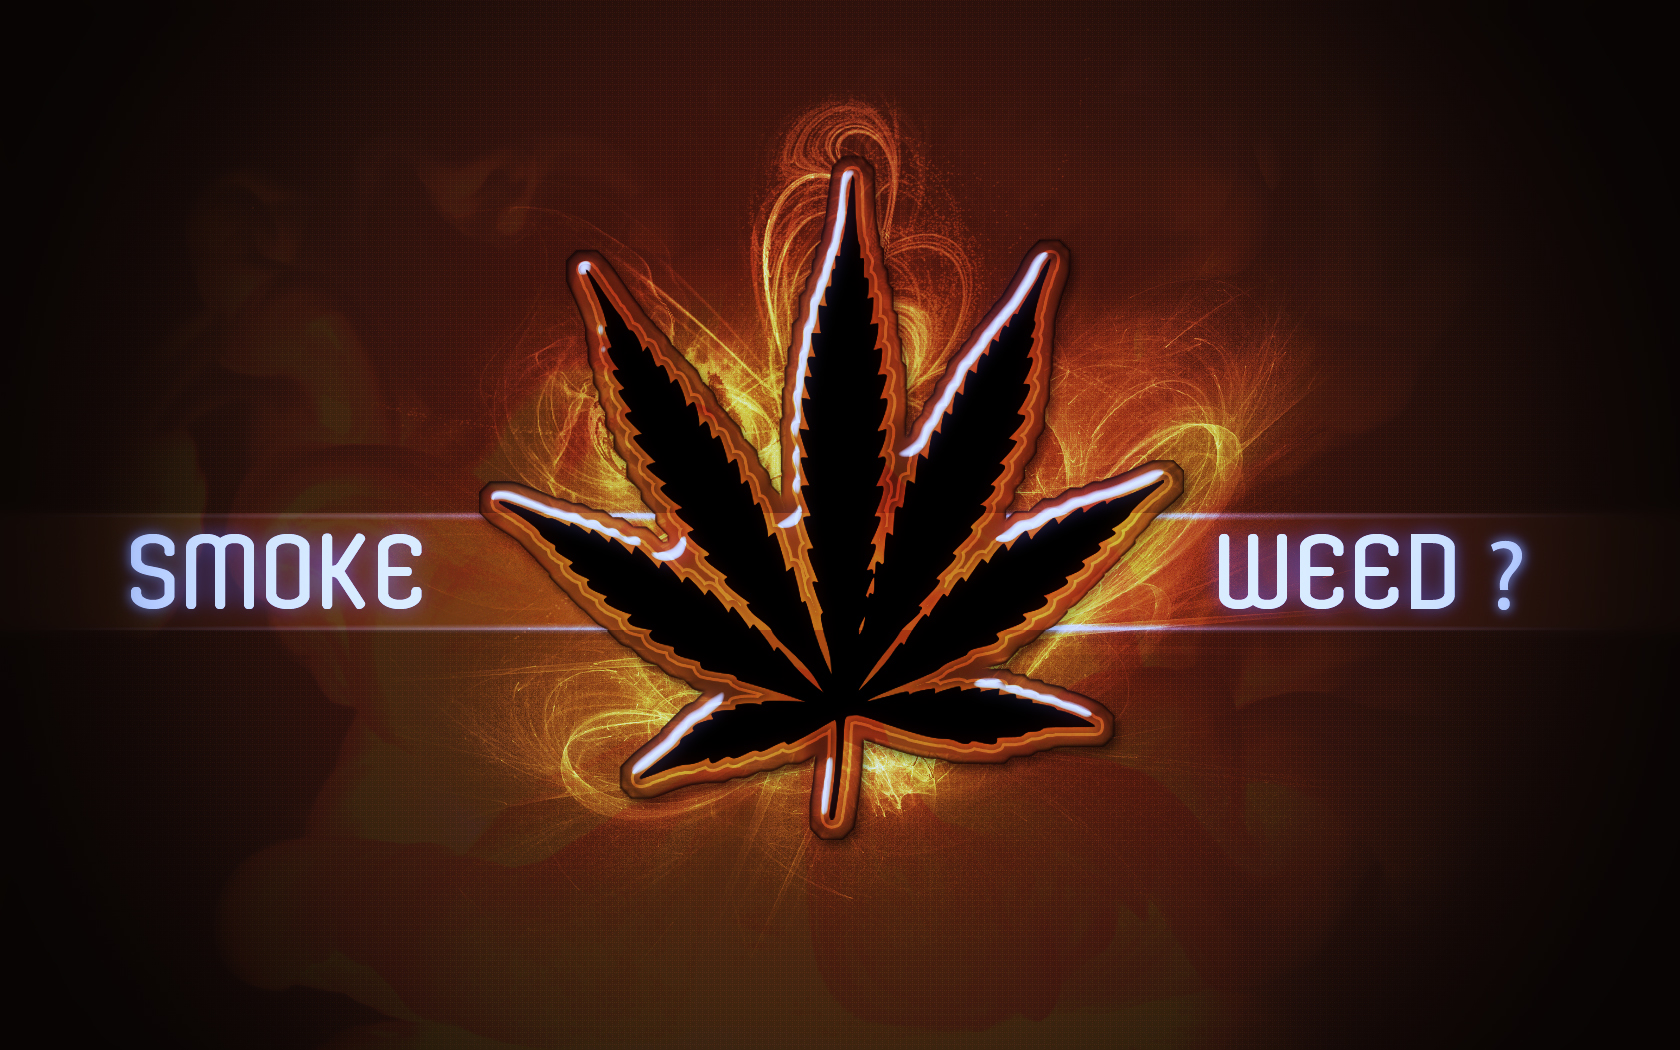 Weed Wallpaper Smoke Weed by aVe1337 1680x1050